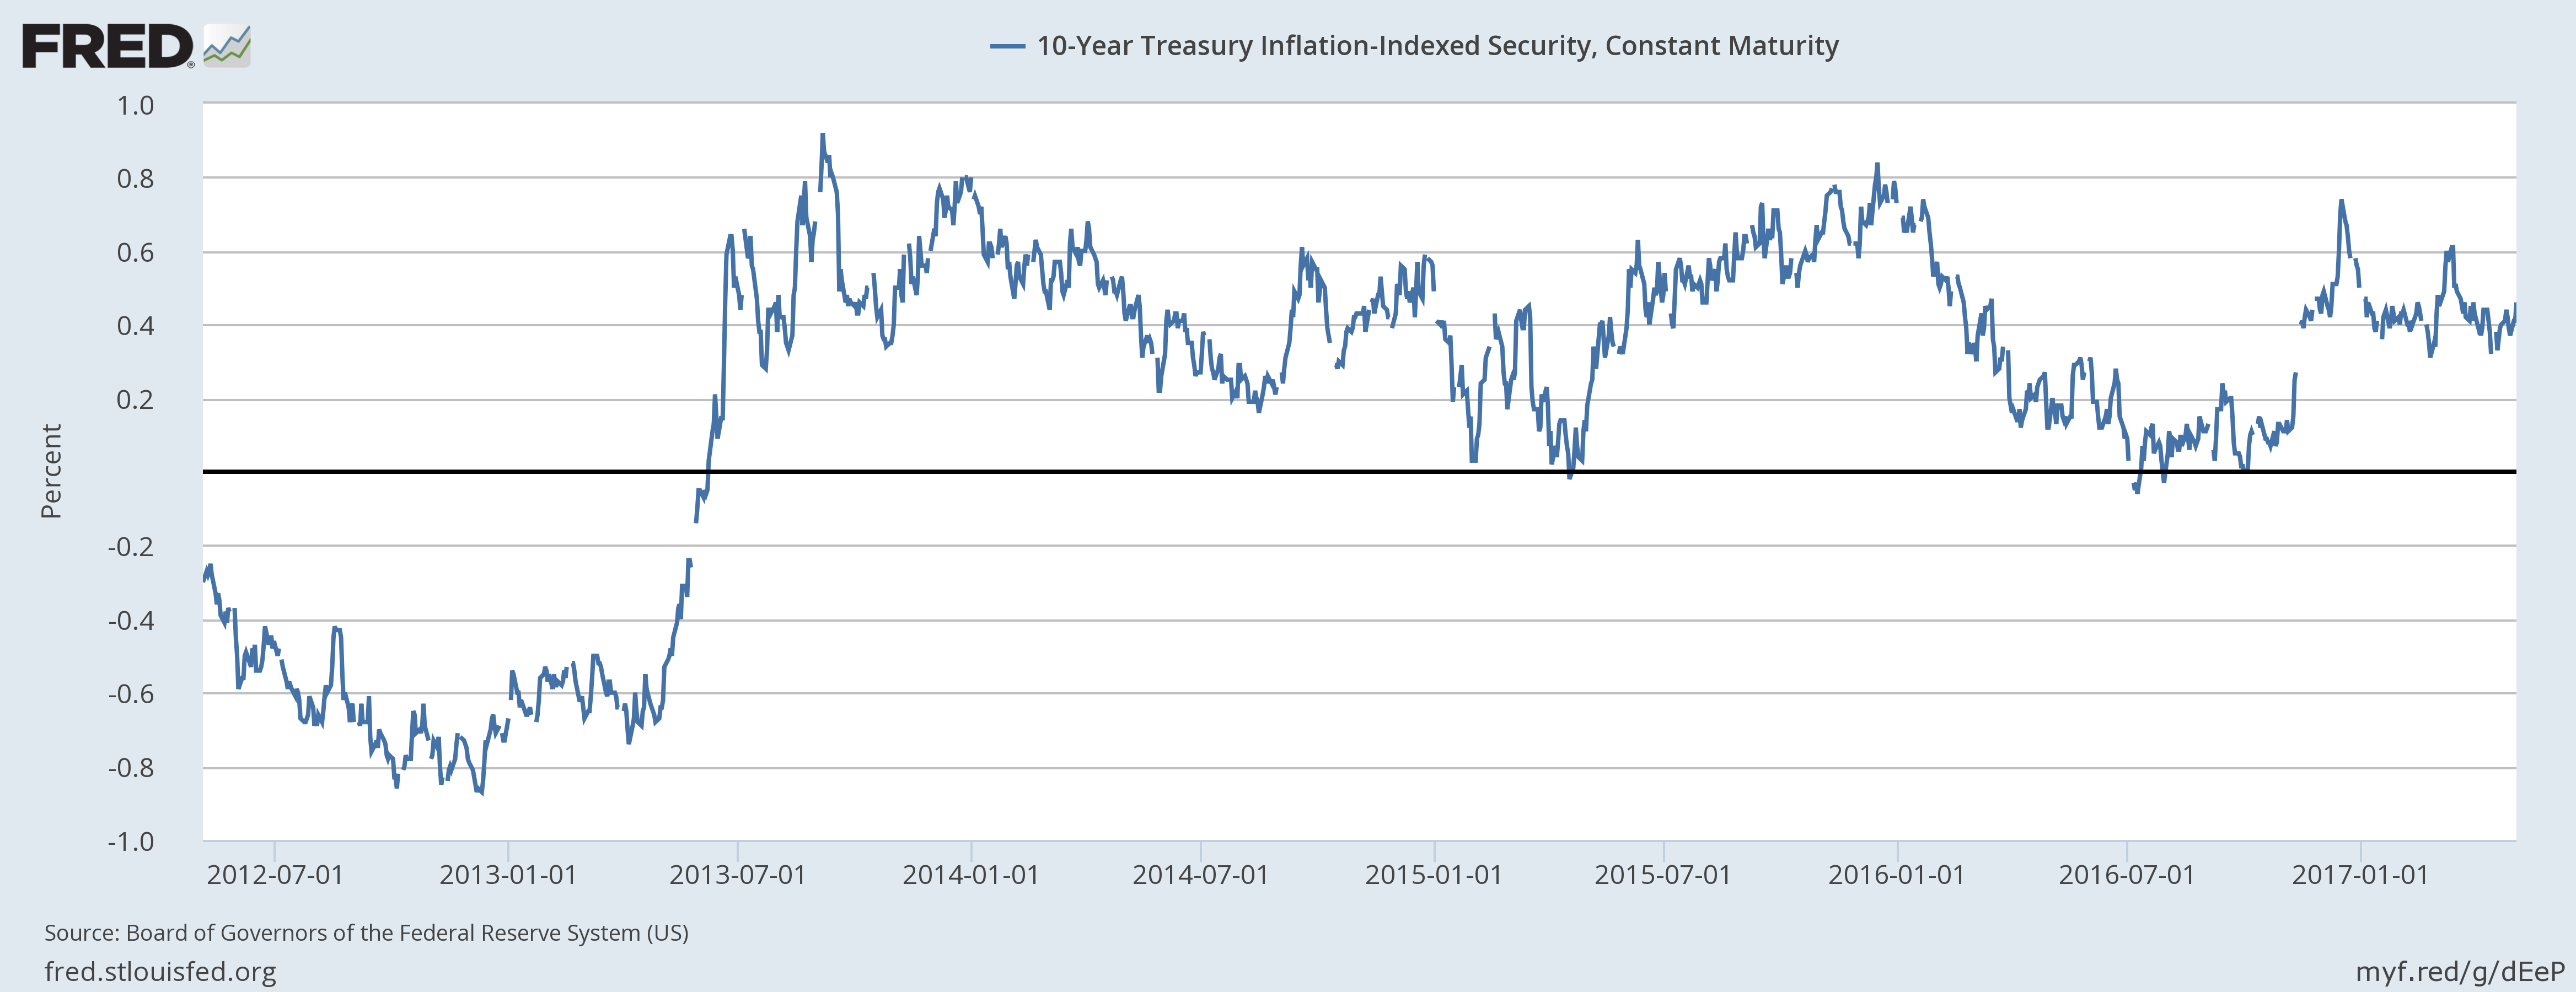 10-Year Treasury Inflation-Indexed Security from 2002